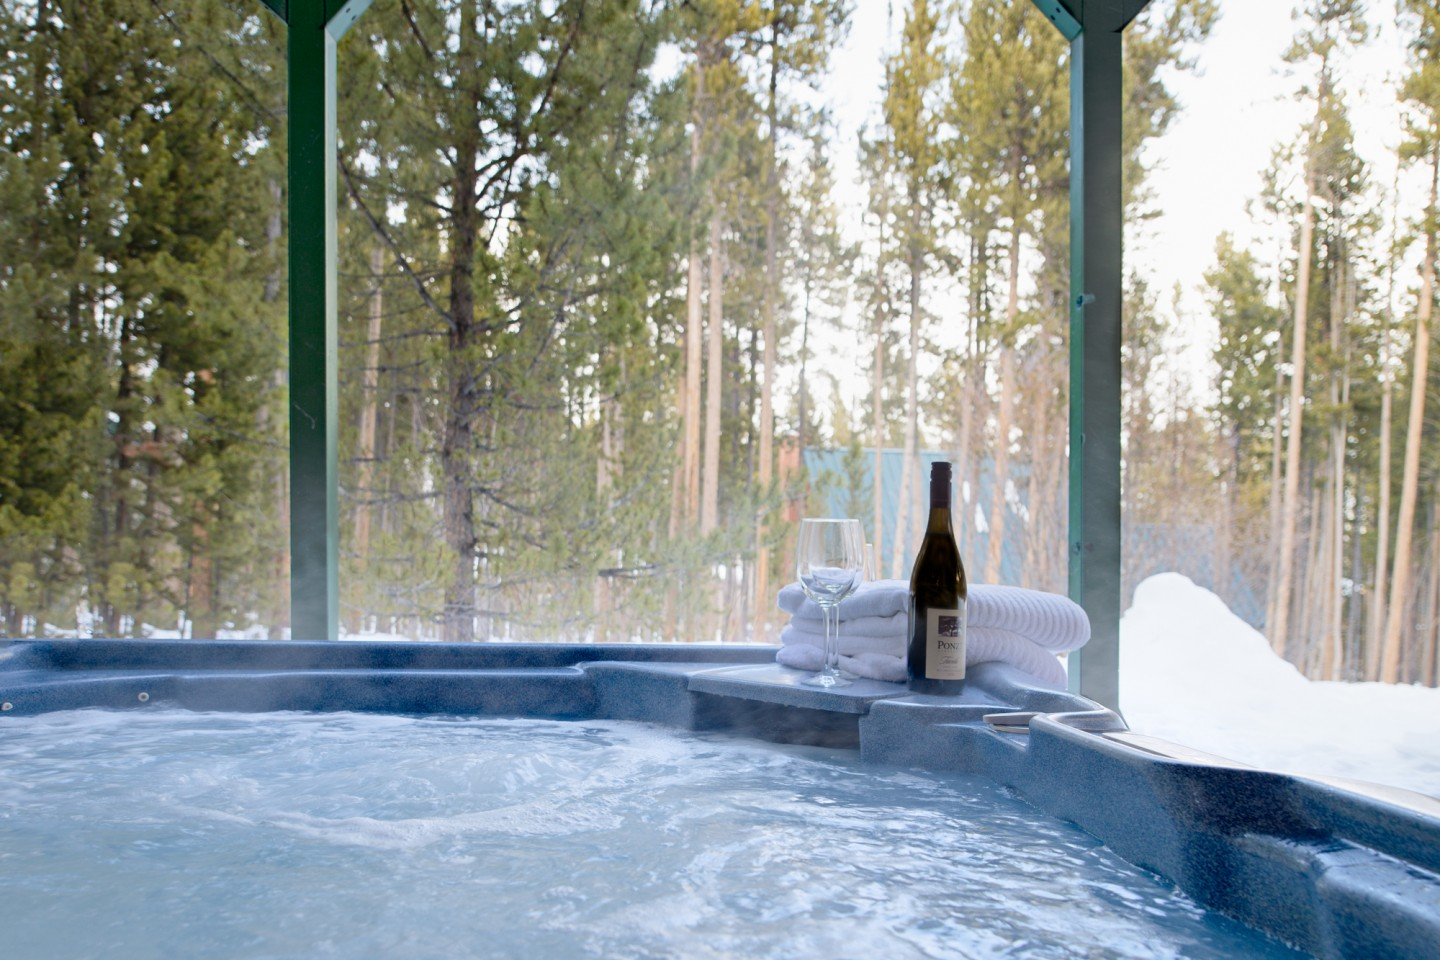 Private hot tub with a view to the surrounding pines ... your seat in the hot tub awaits